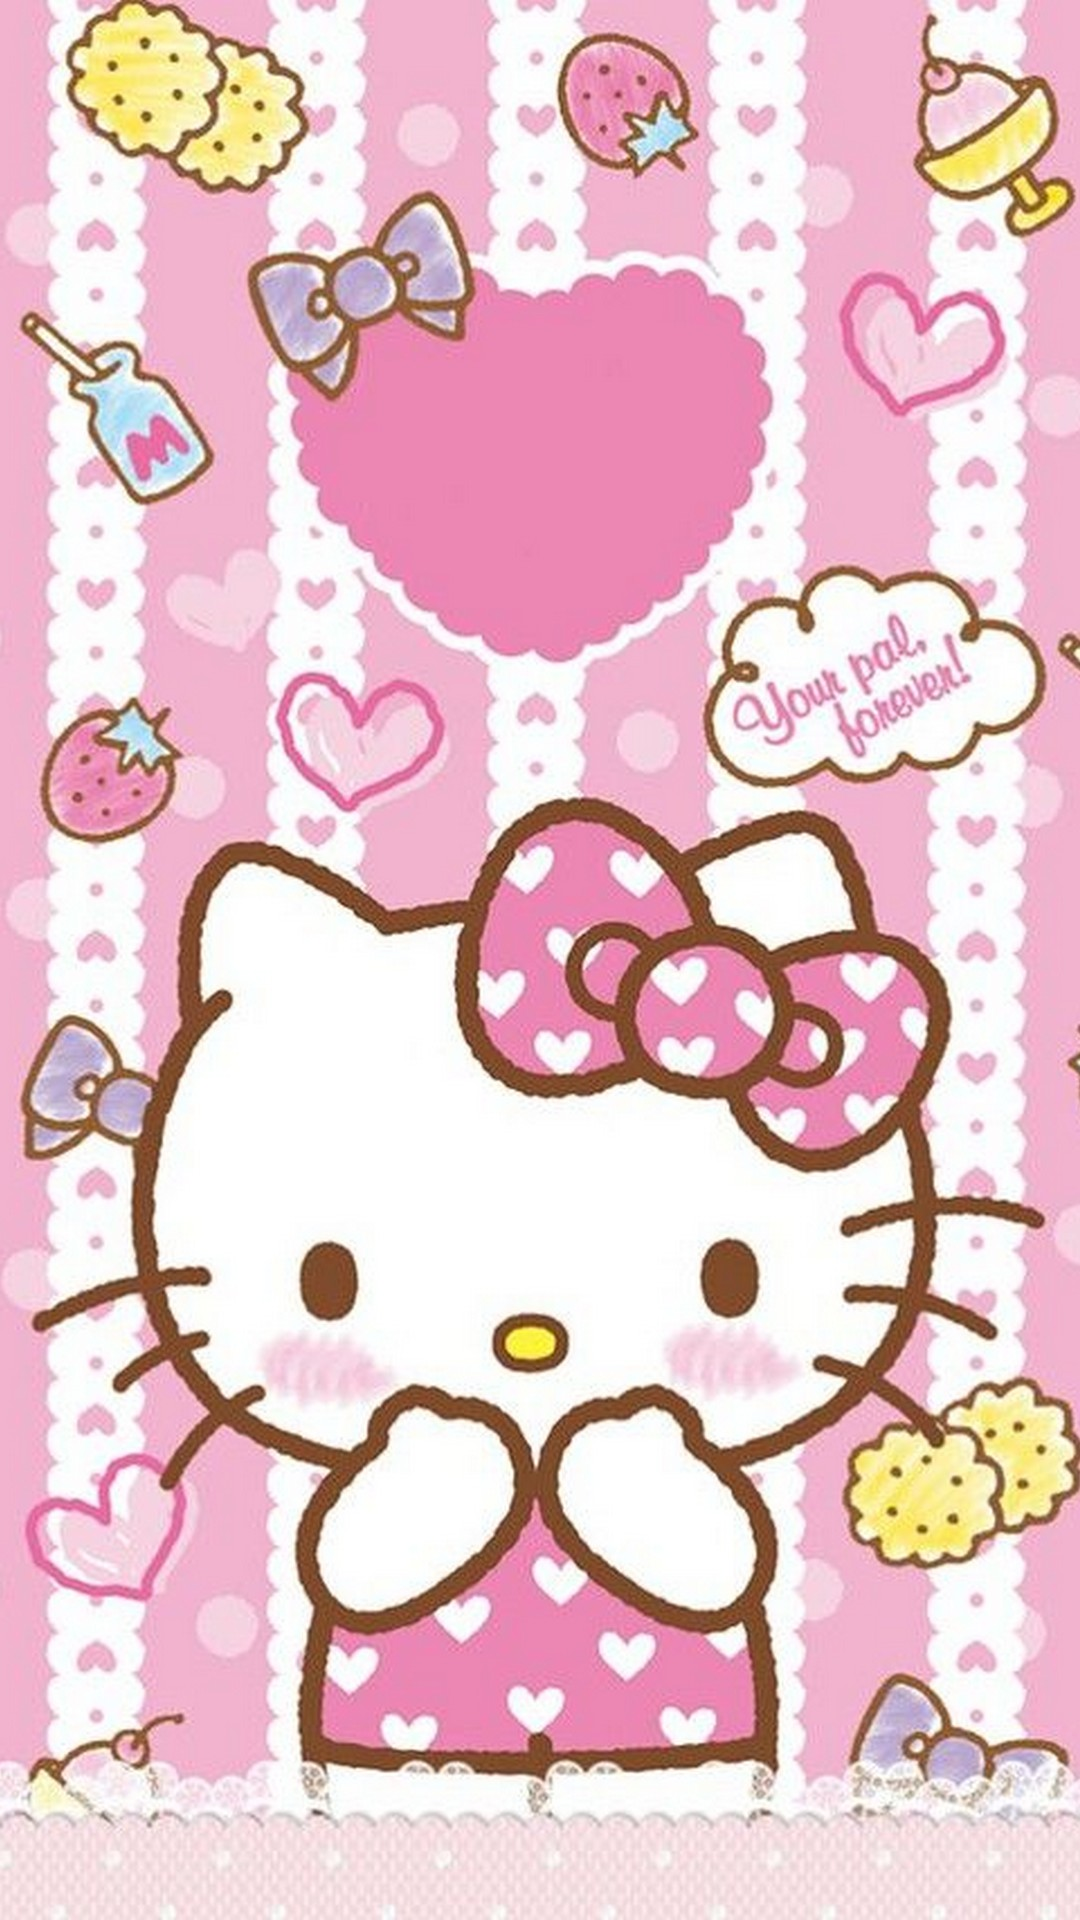 Hello Kitty Characters Wallpaper For Android With Image Hello Kitty Pink 1080x1920 Download Hd Wallpaper Wallpapertip